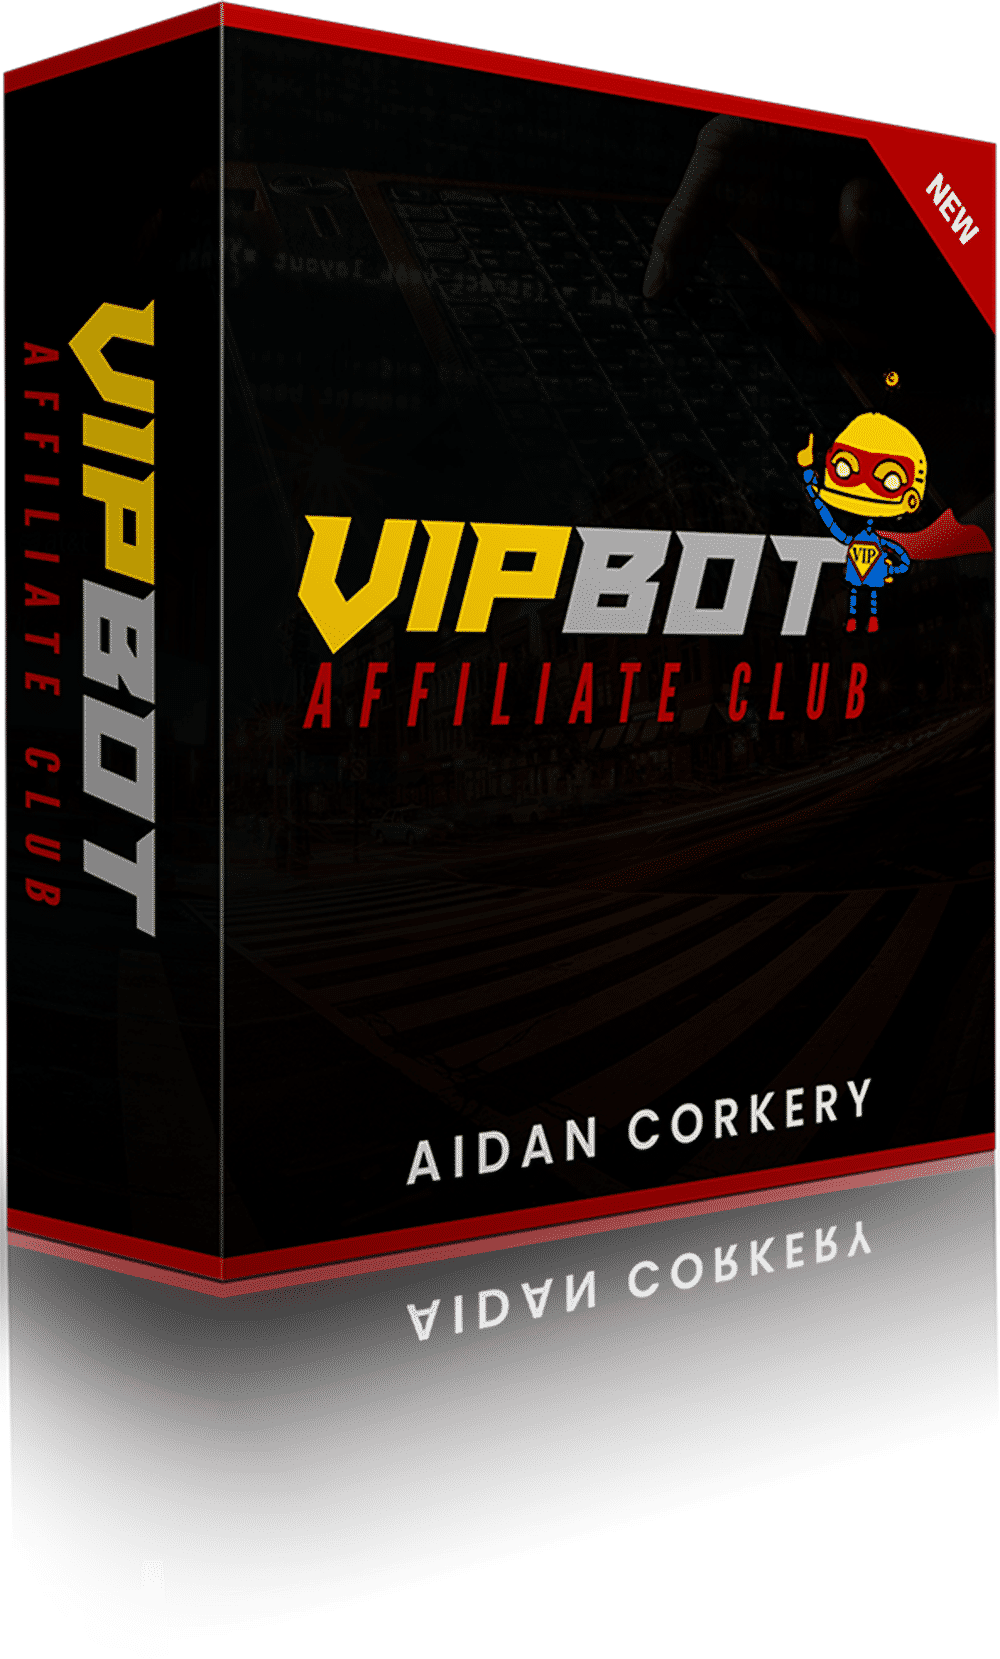 vip bot affiliate club box